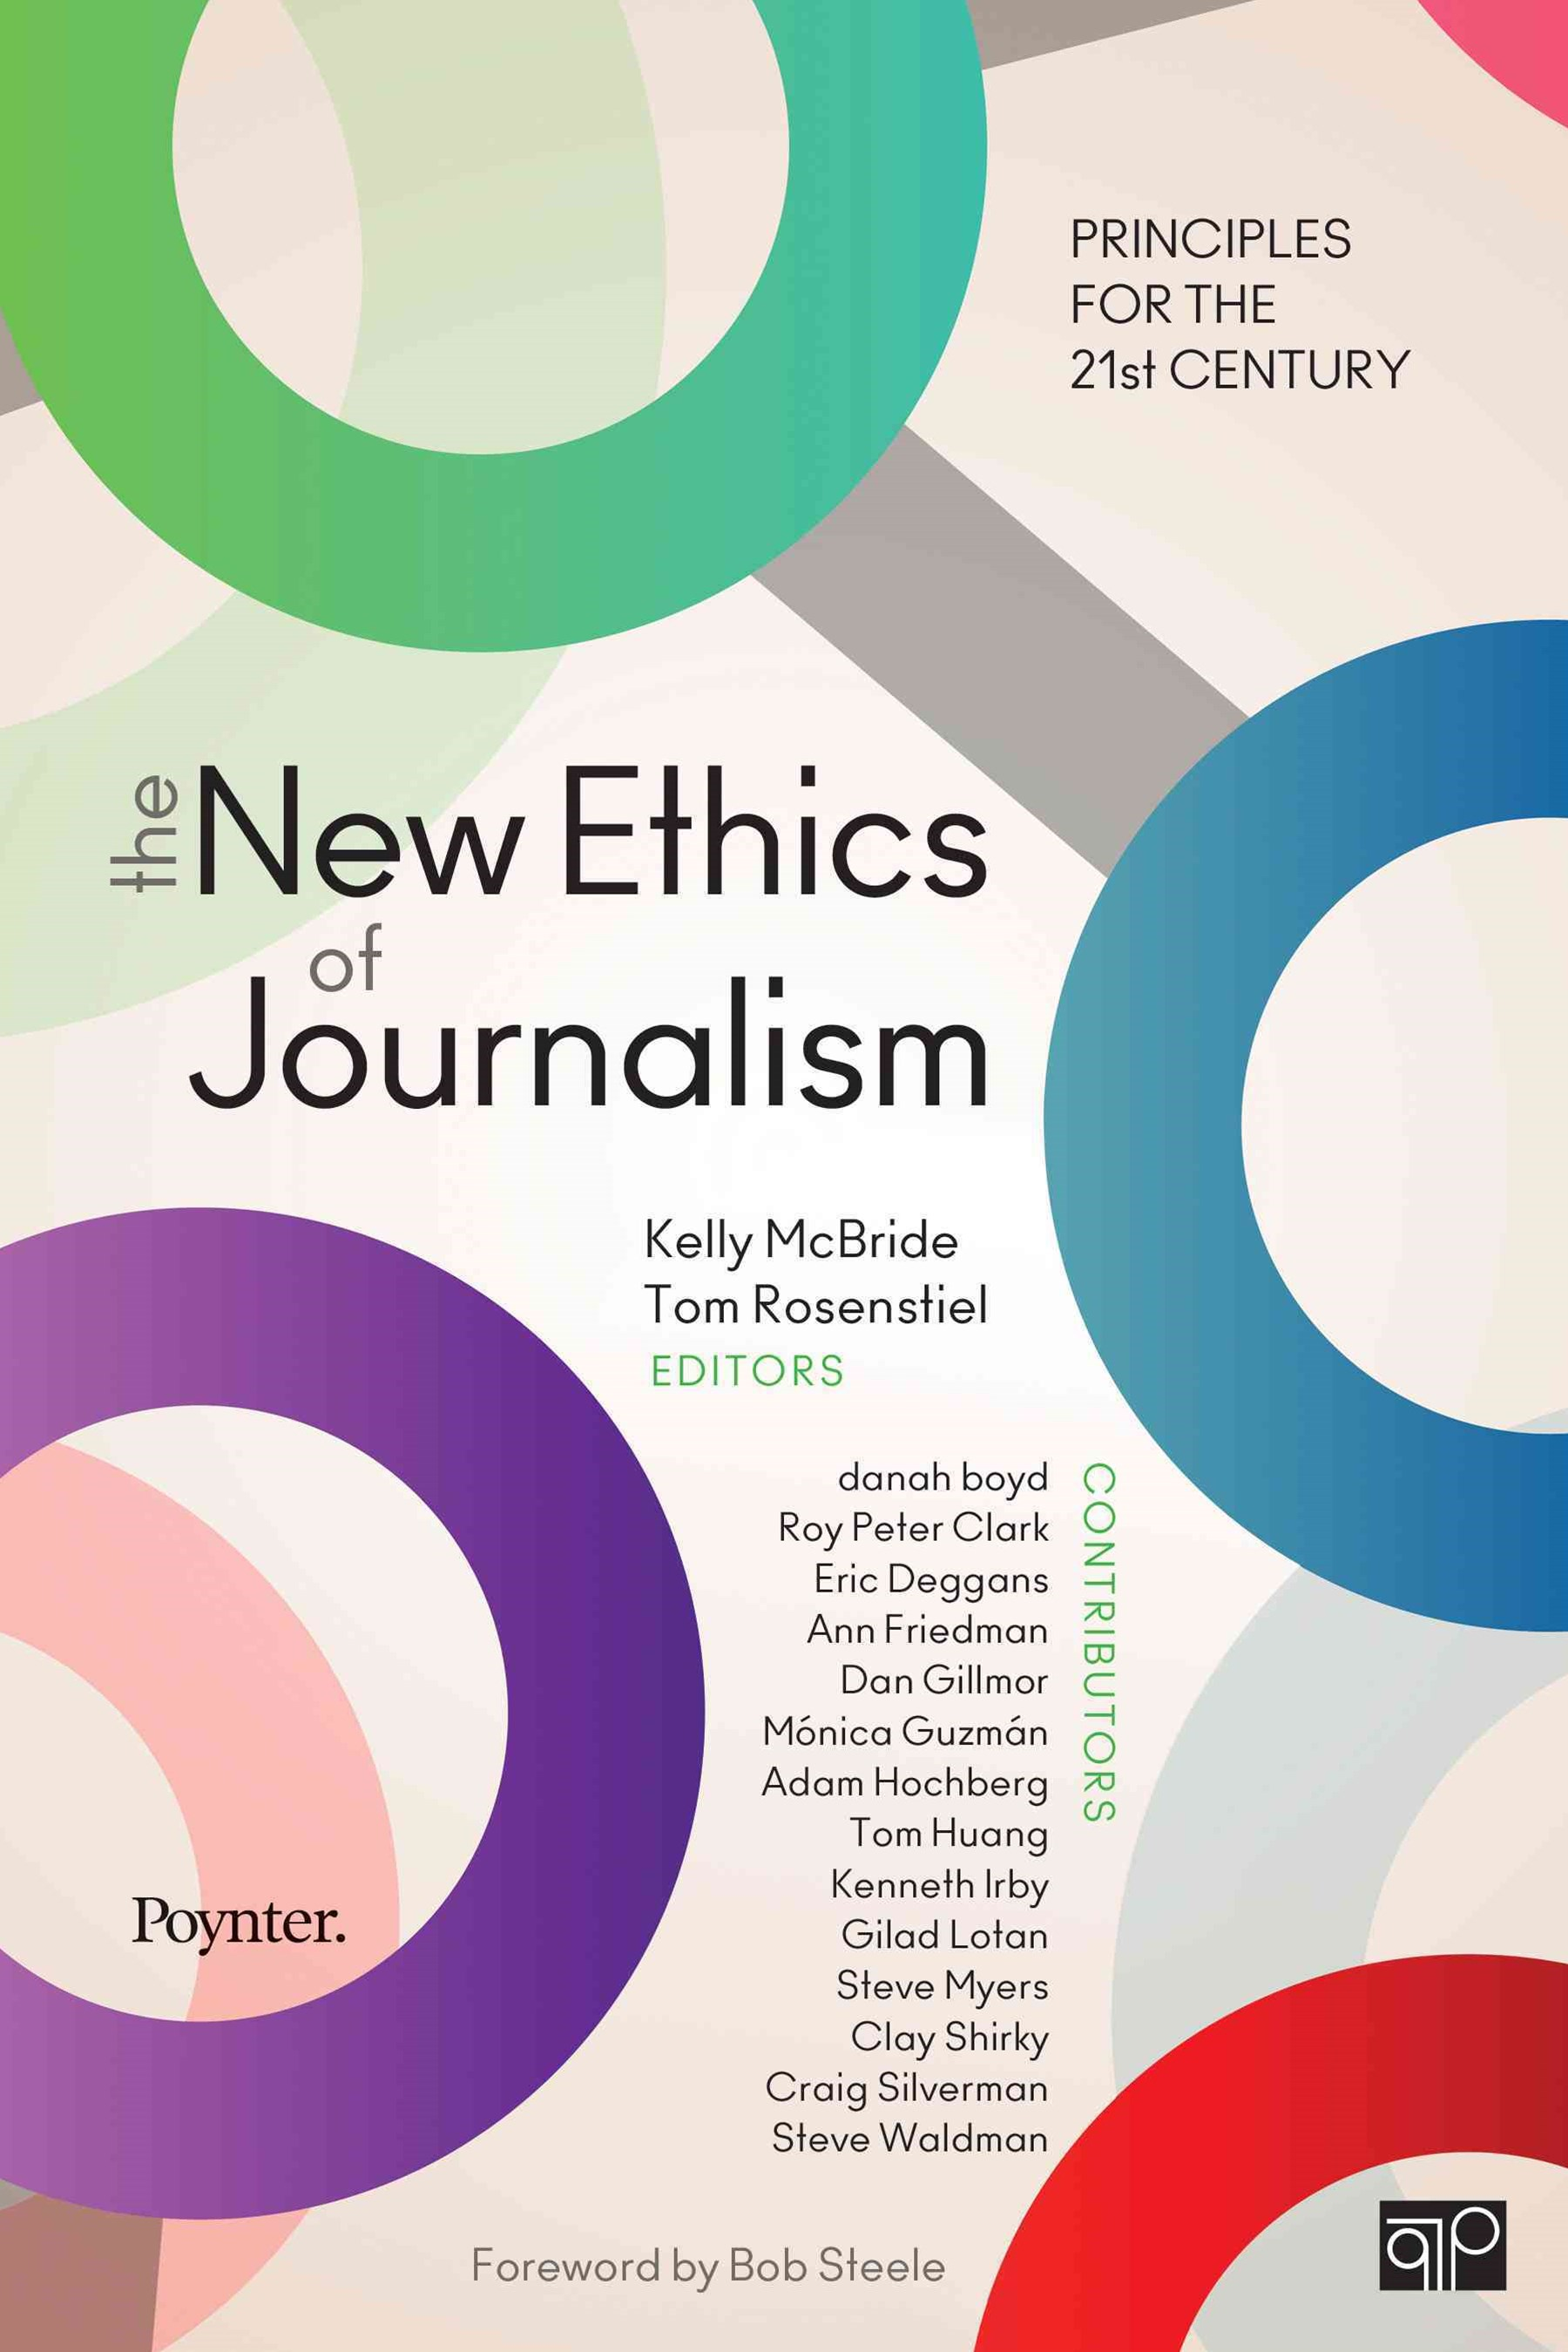 New Ethics of Journalism